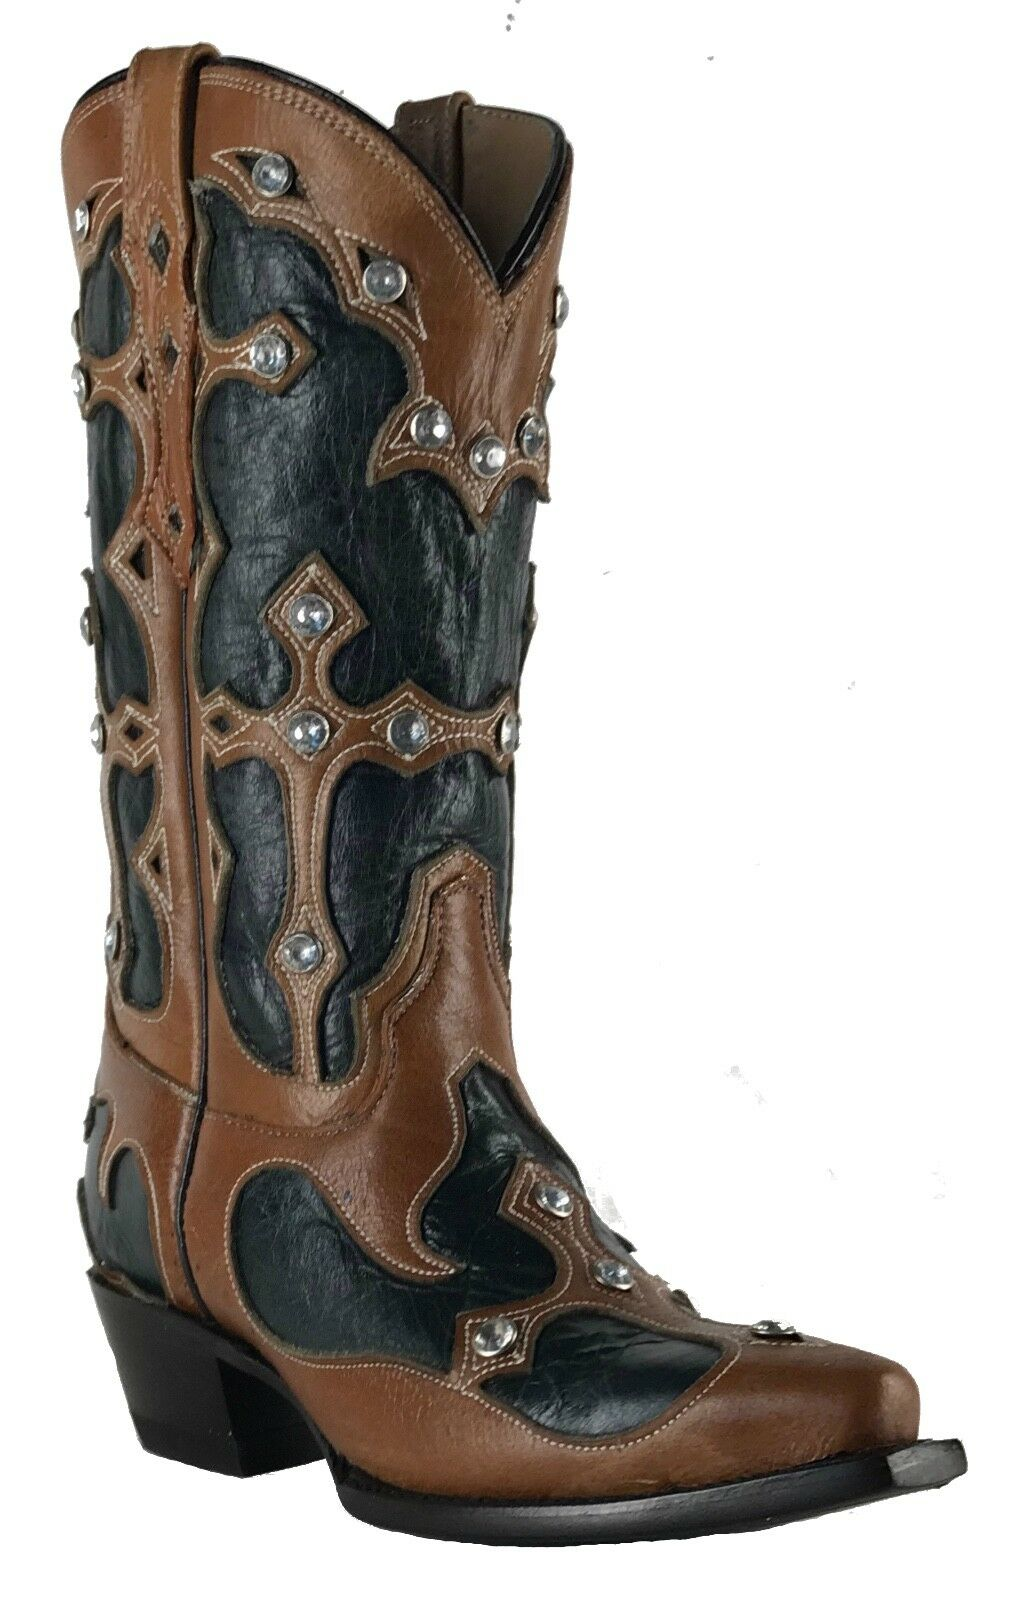 Women's New Leather Studs Cowgirl Western Biker Boots Snip Brown Black Sale